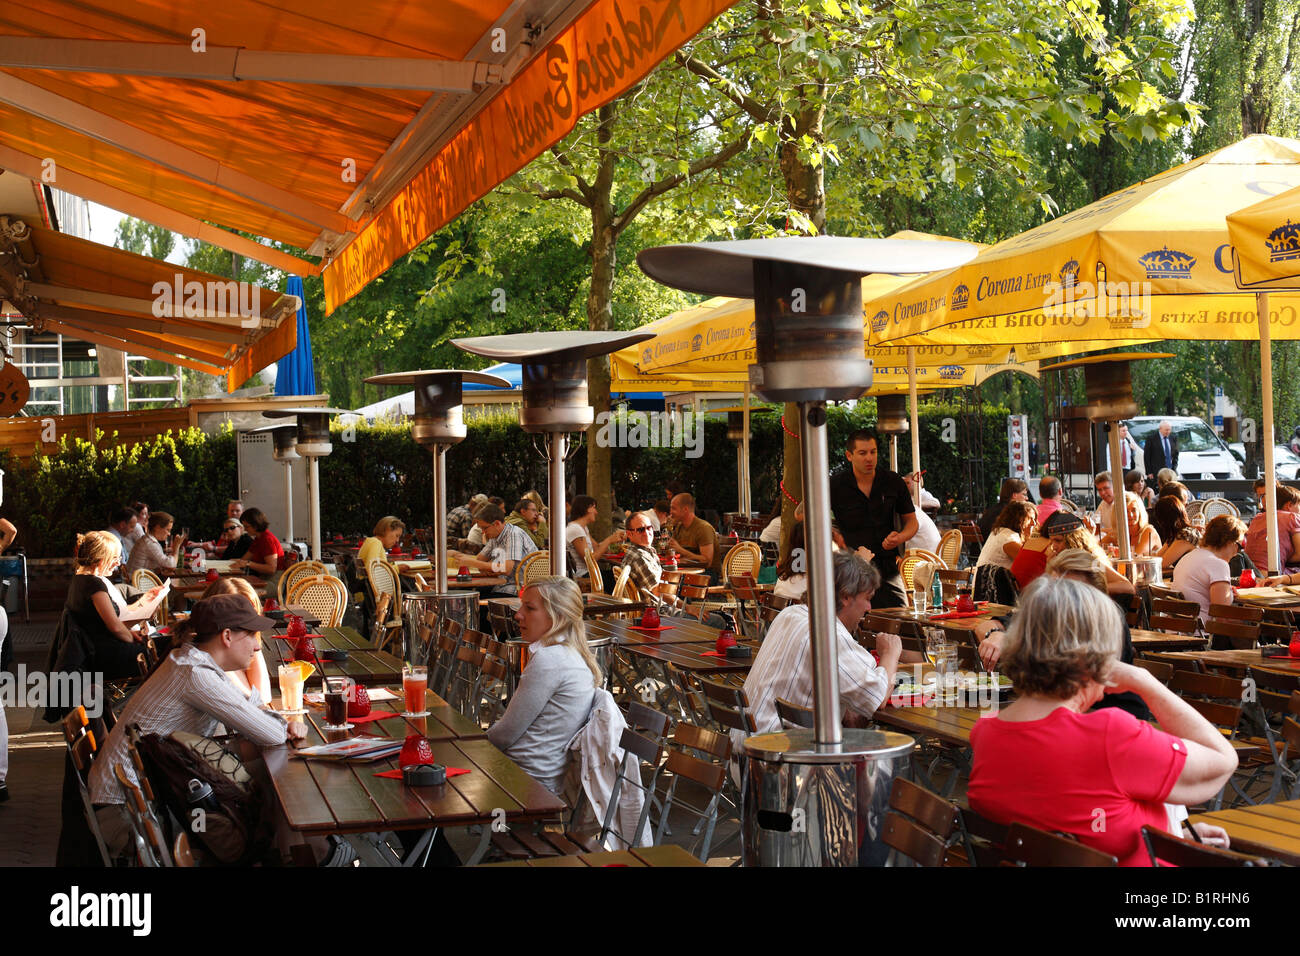 Stock Photo   Terrace Of A Restaurant With Patio Heaters, Also Called A  Mushroom Or Umbrella Heaters, On Leopoldstrasse Street, Schwabing, Mu